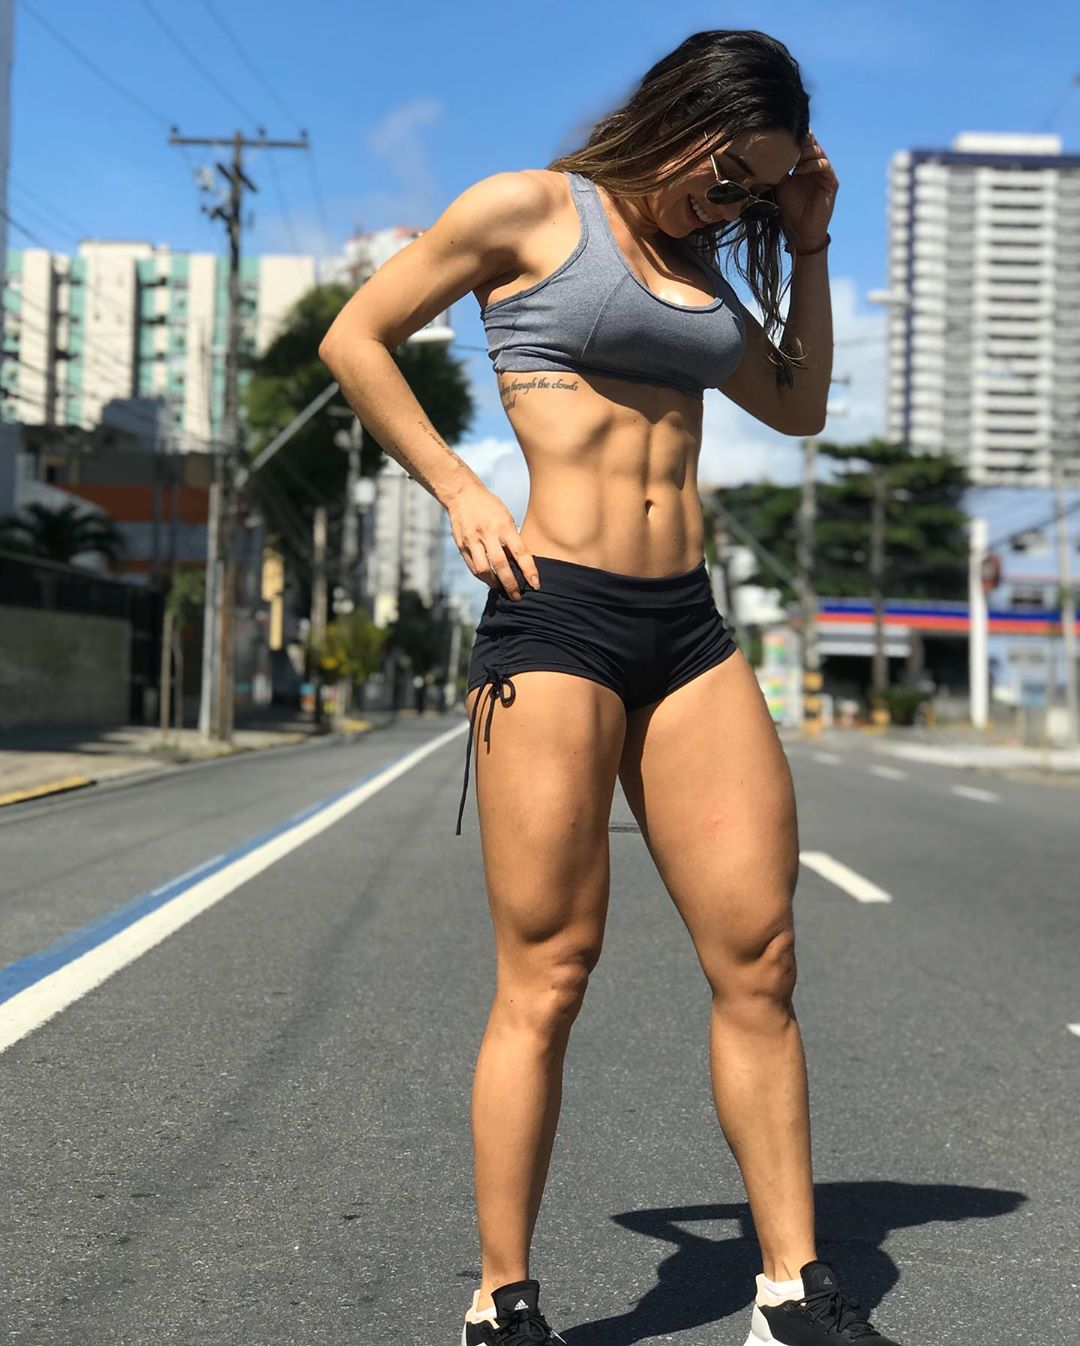 Amanda Manoela Alves